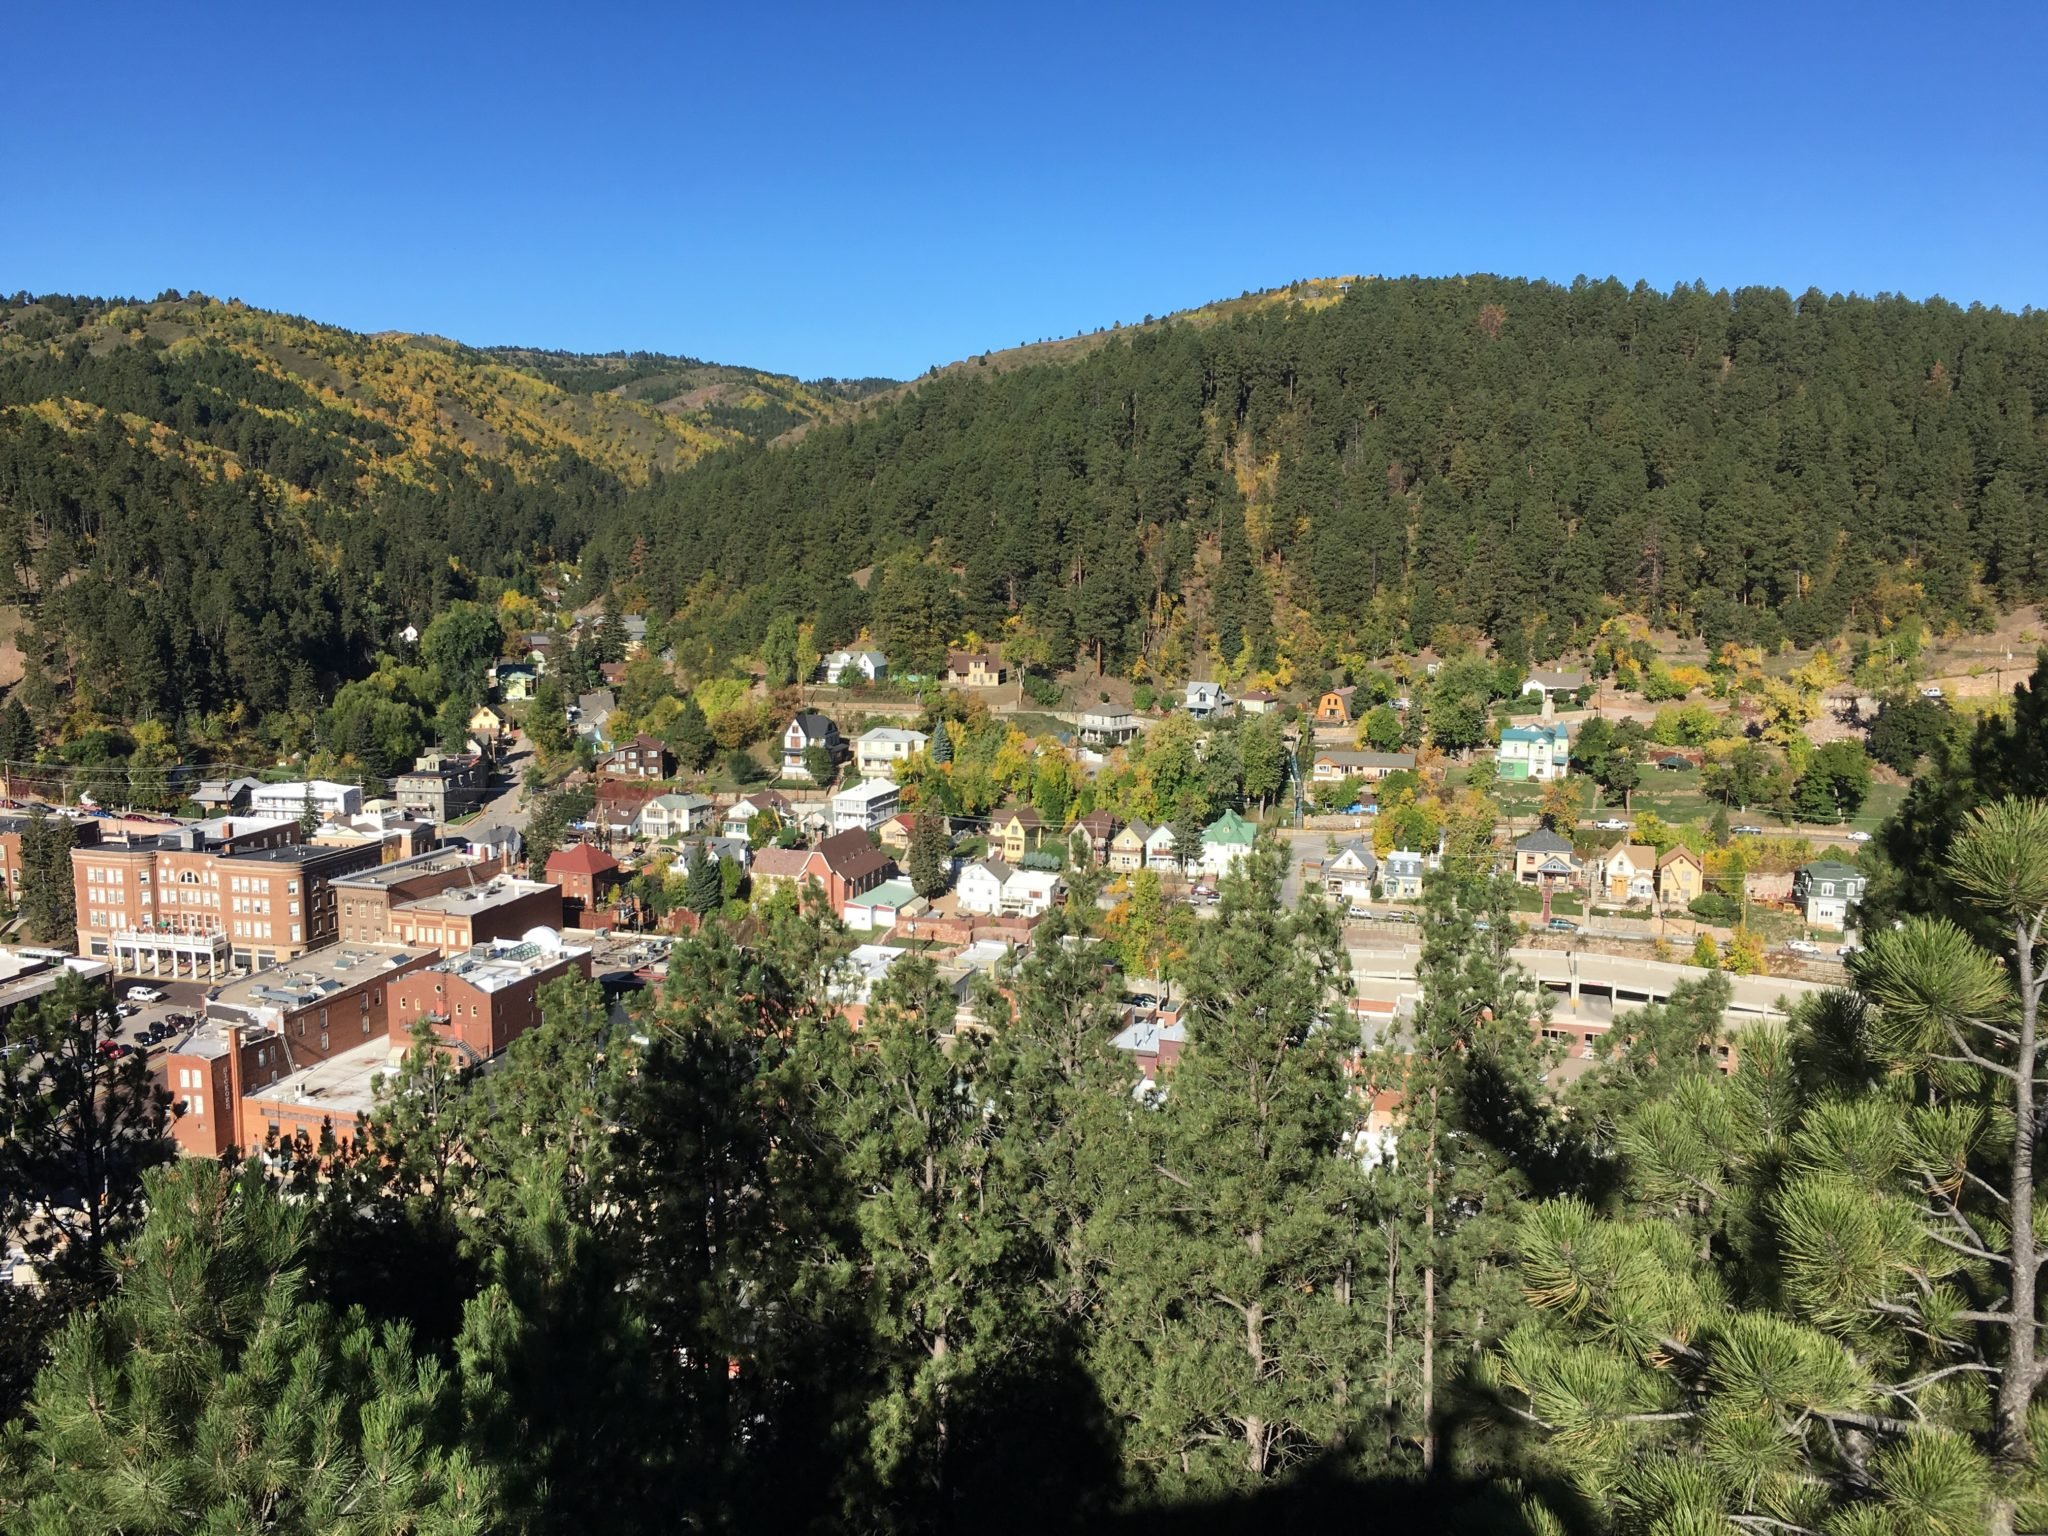 Mount Moriah and more Deadwood